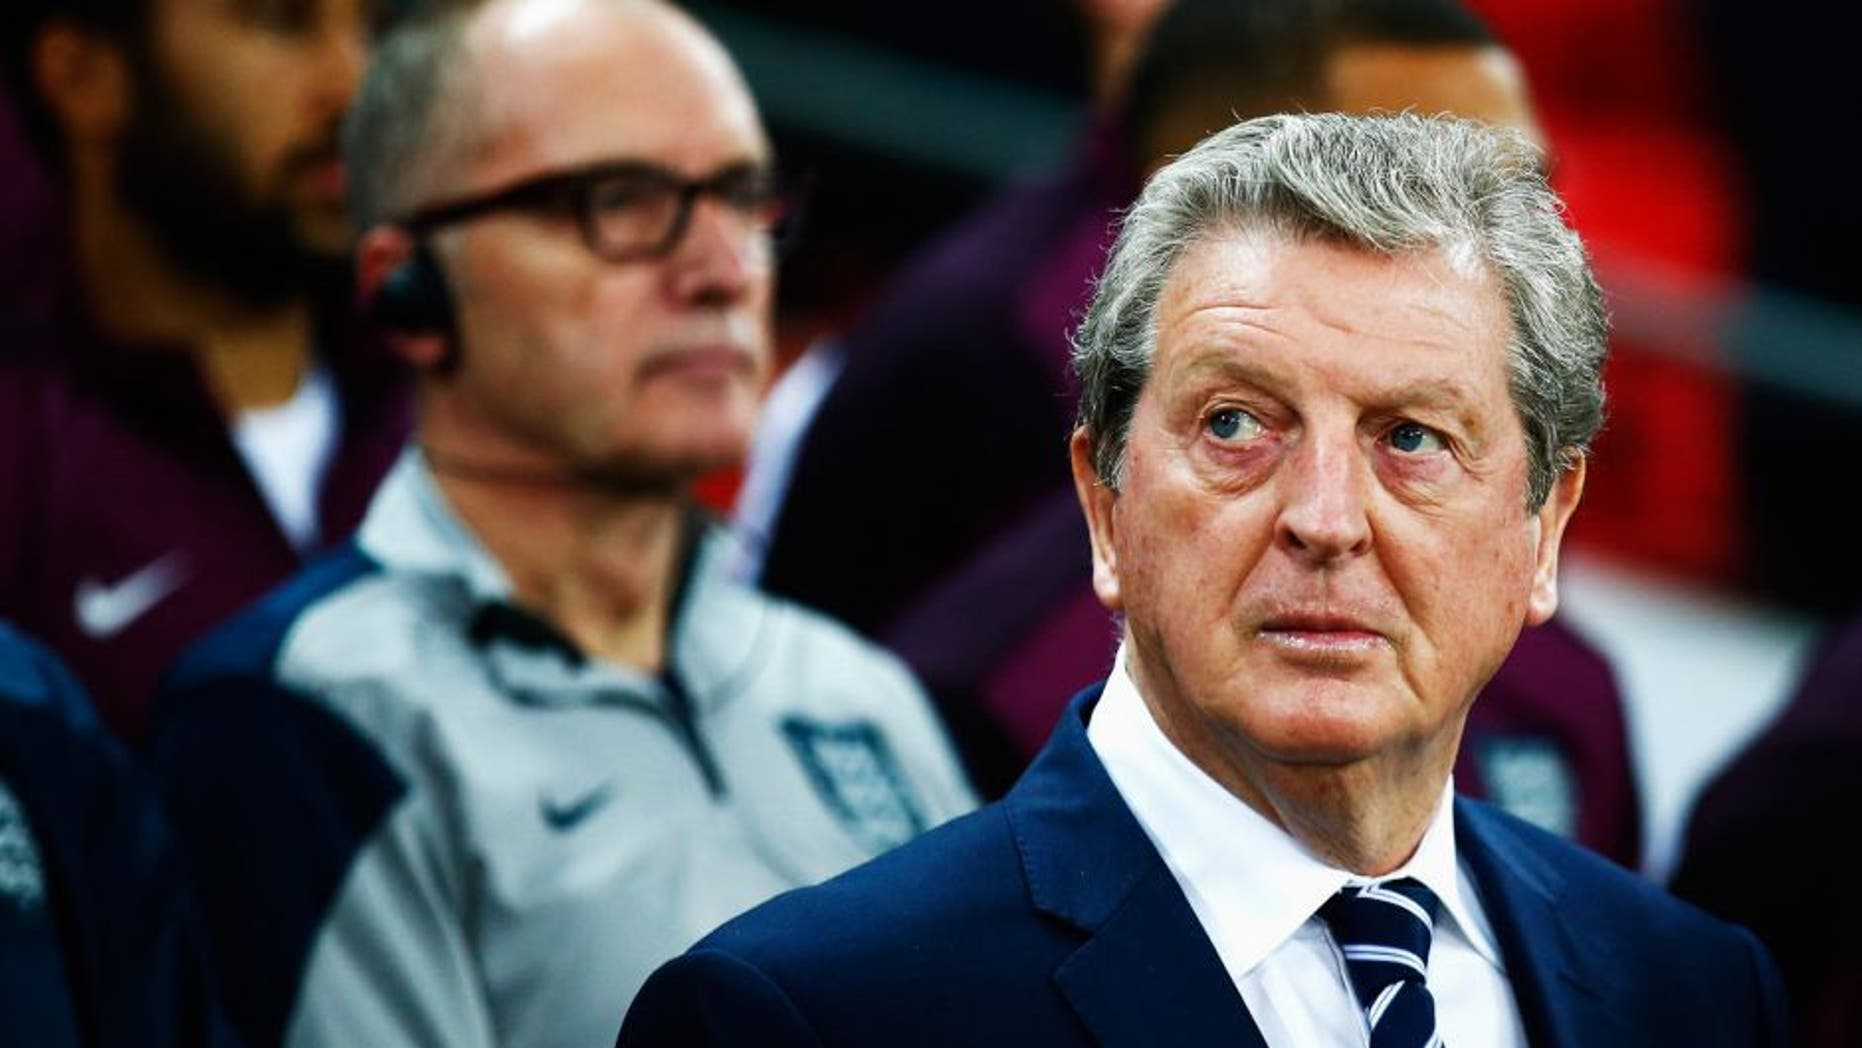 LONDON, ENGLAND - OCTOBER 09: Roy Hodgson manager of England looks on prior to the UEFA EURO 2016 Group E qualifying match between England and Estonia at Wembley on October 9, 2015 in London, United Kingdom. (Photo by Clive Rose/Getty Images)